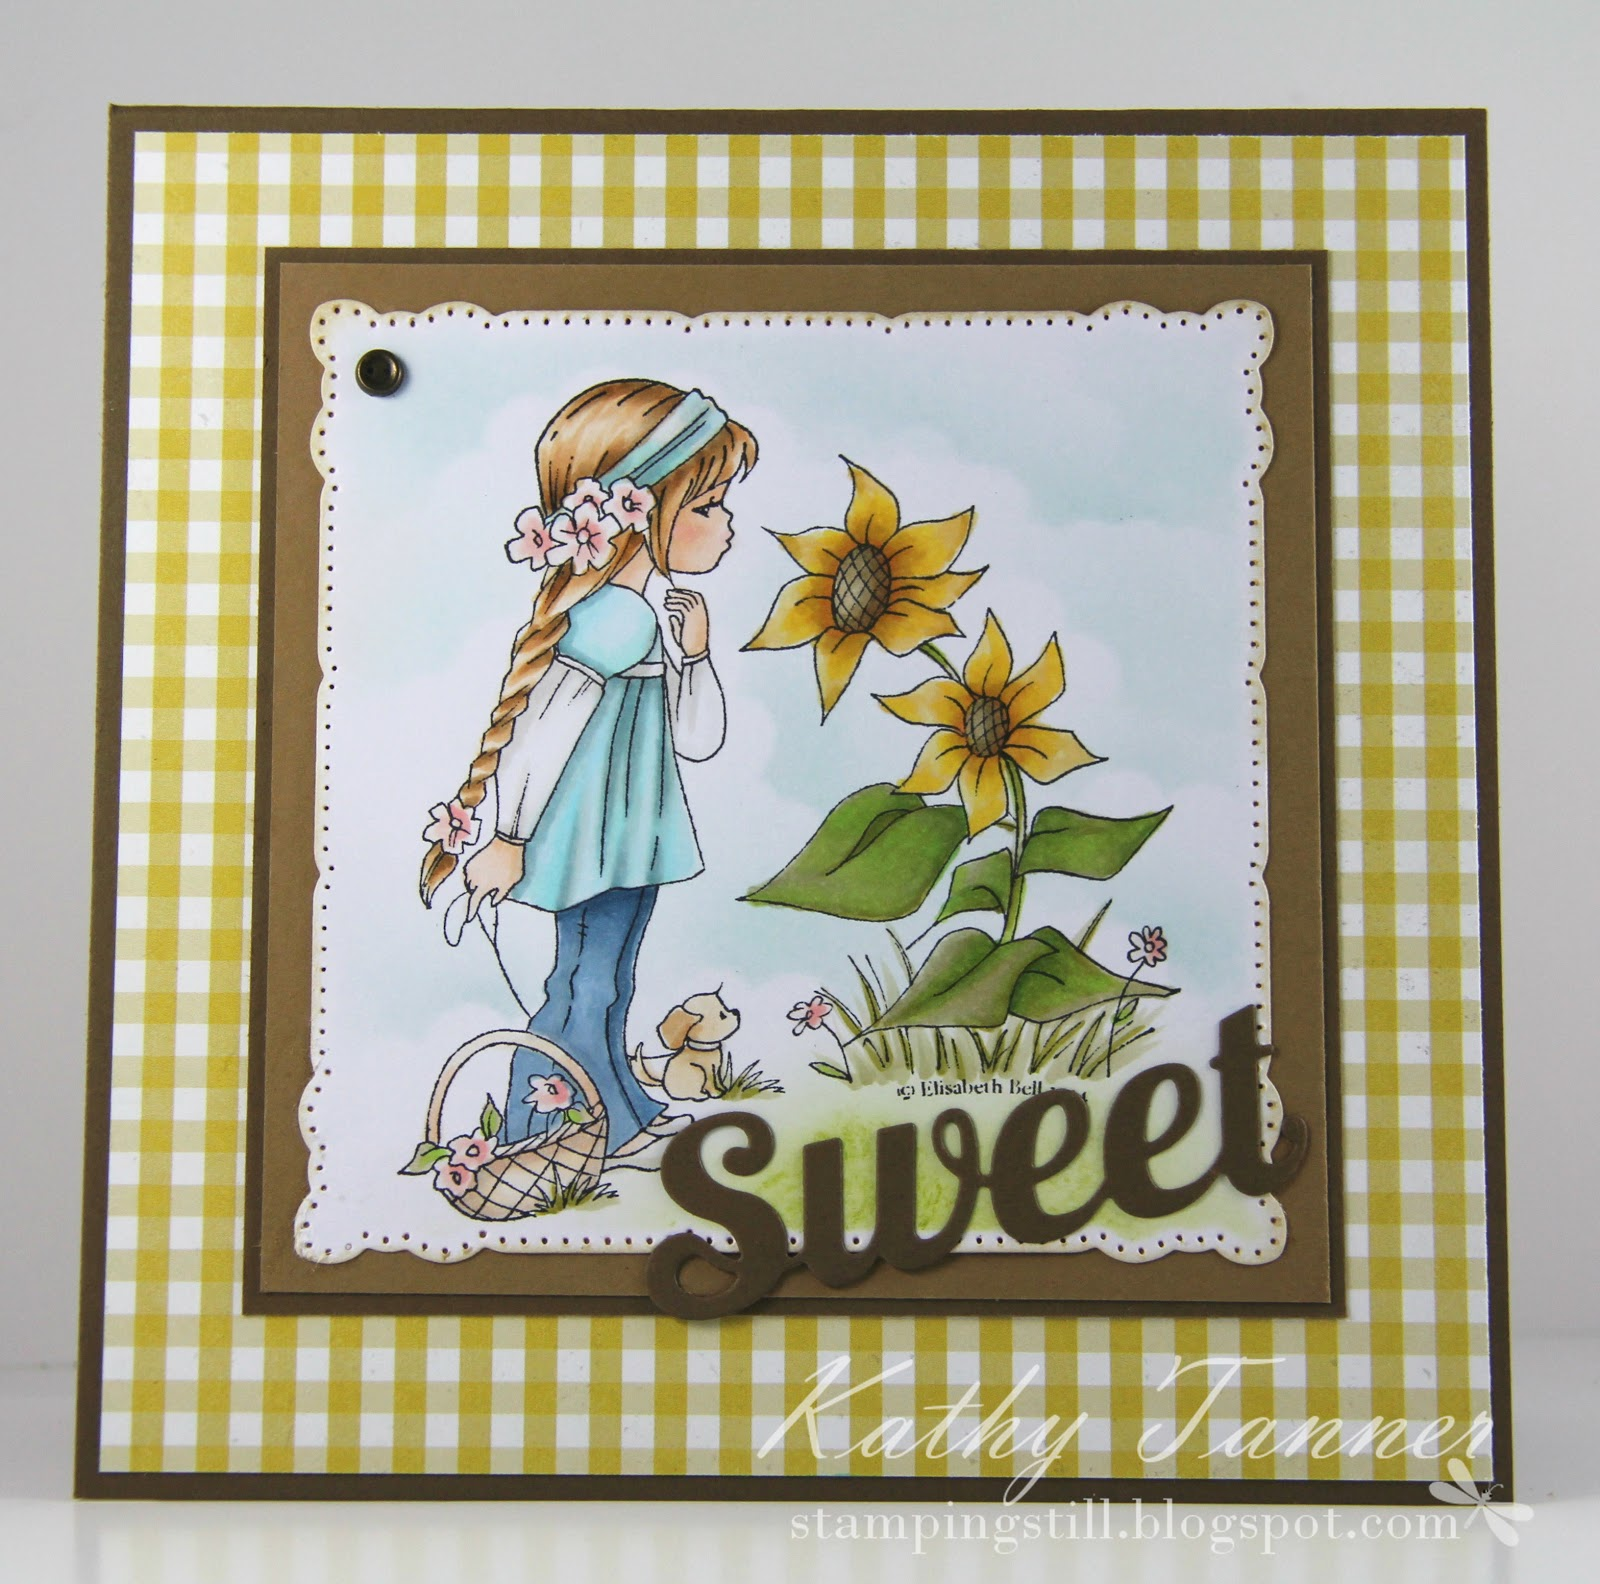 whimsy stamps, sunnydee and sunflower, sweet die